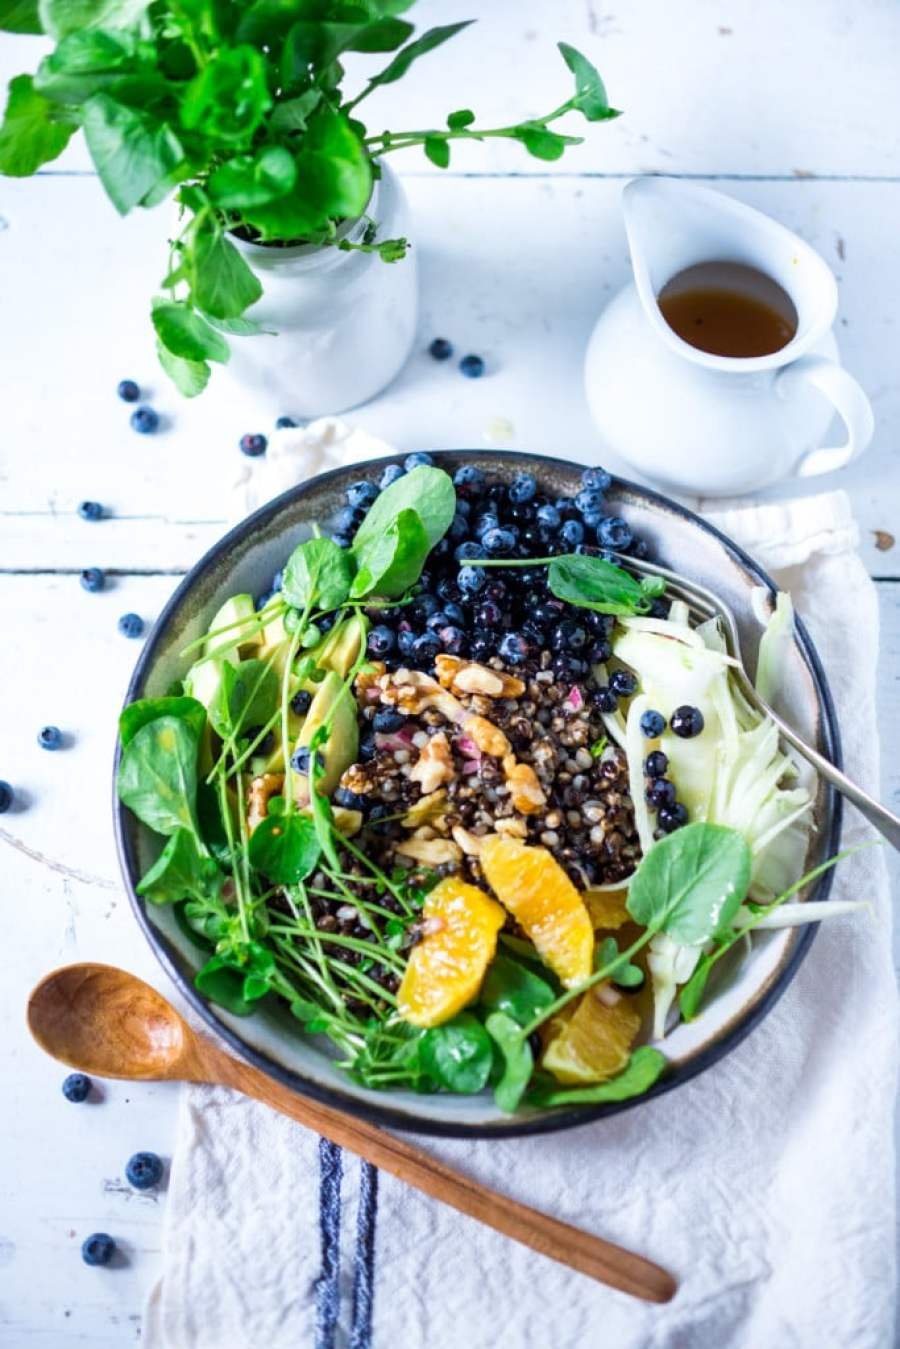 EAT CLEAN with these 20 simple Plant-Based Meals!!!   (Vegan & GF)  This Glow Bowl is packed full of skin nutrients to make glow from the inside out. Blueberries, fennel, oranges, watercress and whole grains.   www.feastingathome.com